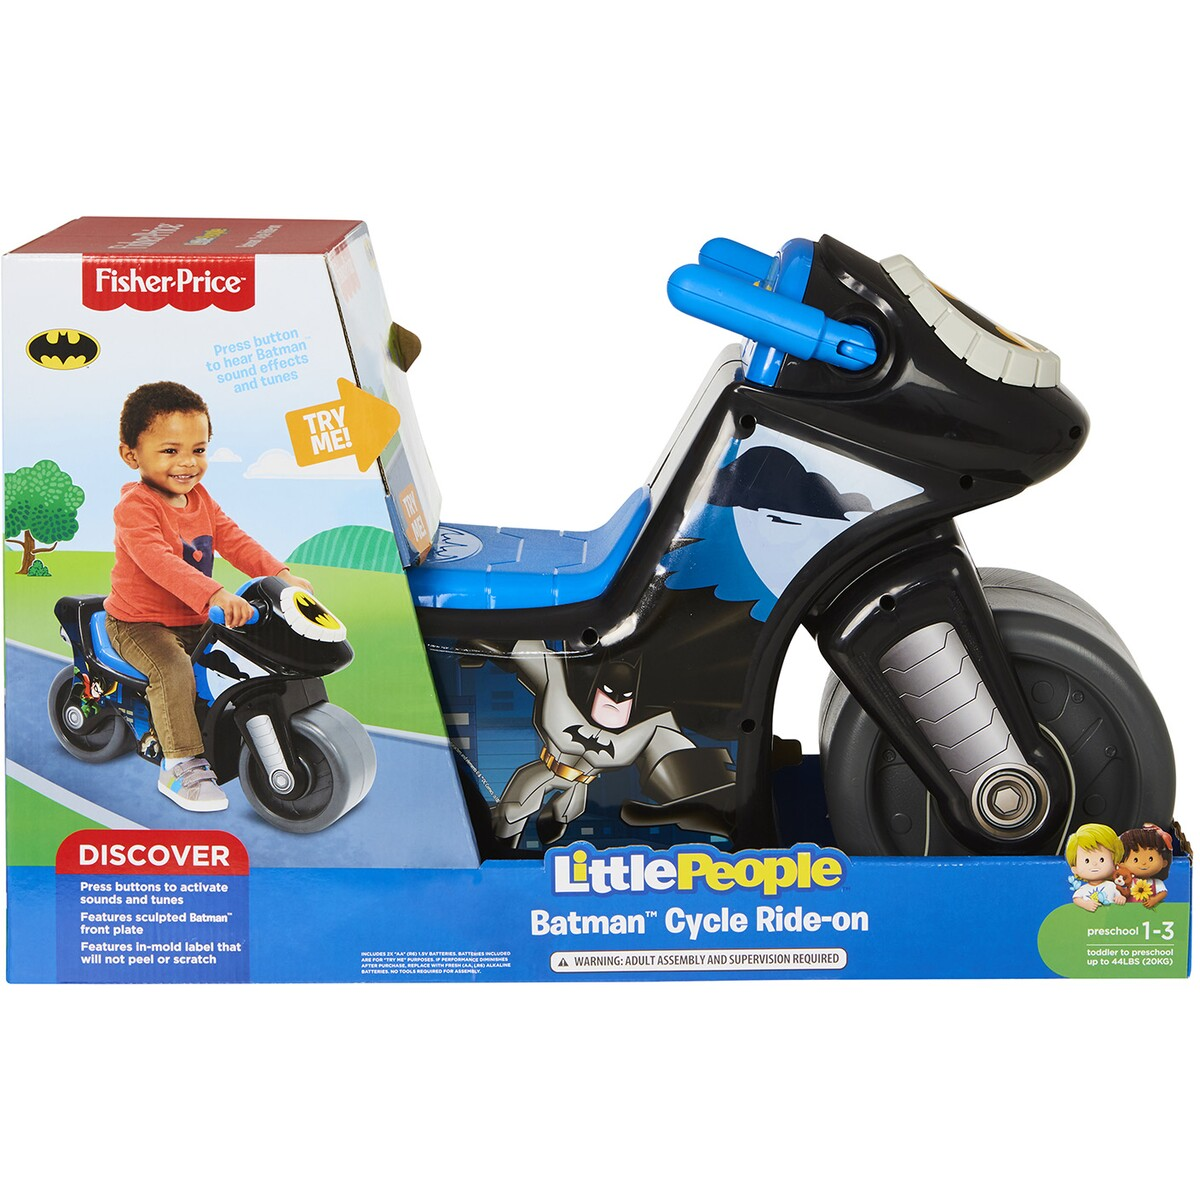 FISHER PRICE LITTLE PEOPLE BATMAN CYCLE RIDE ON